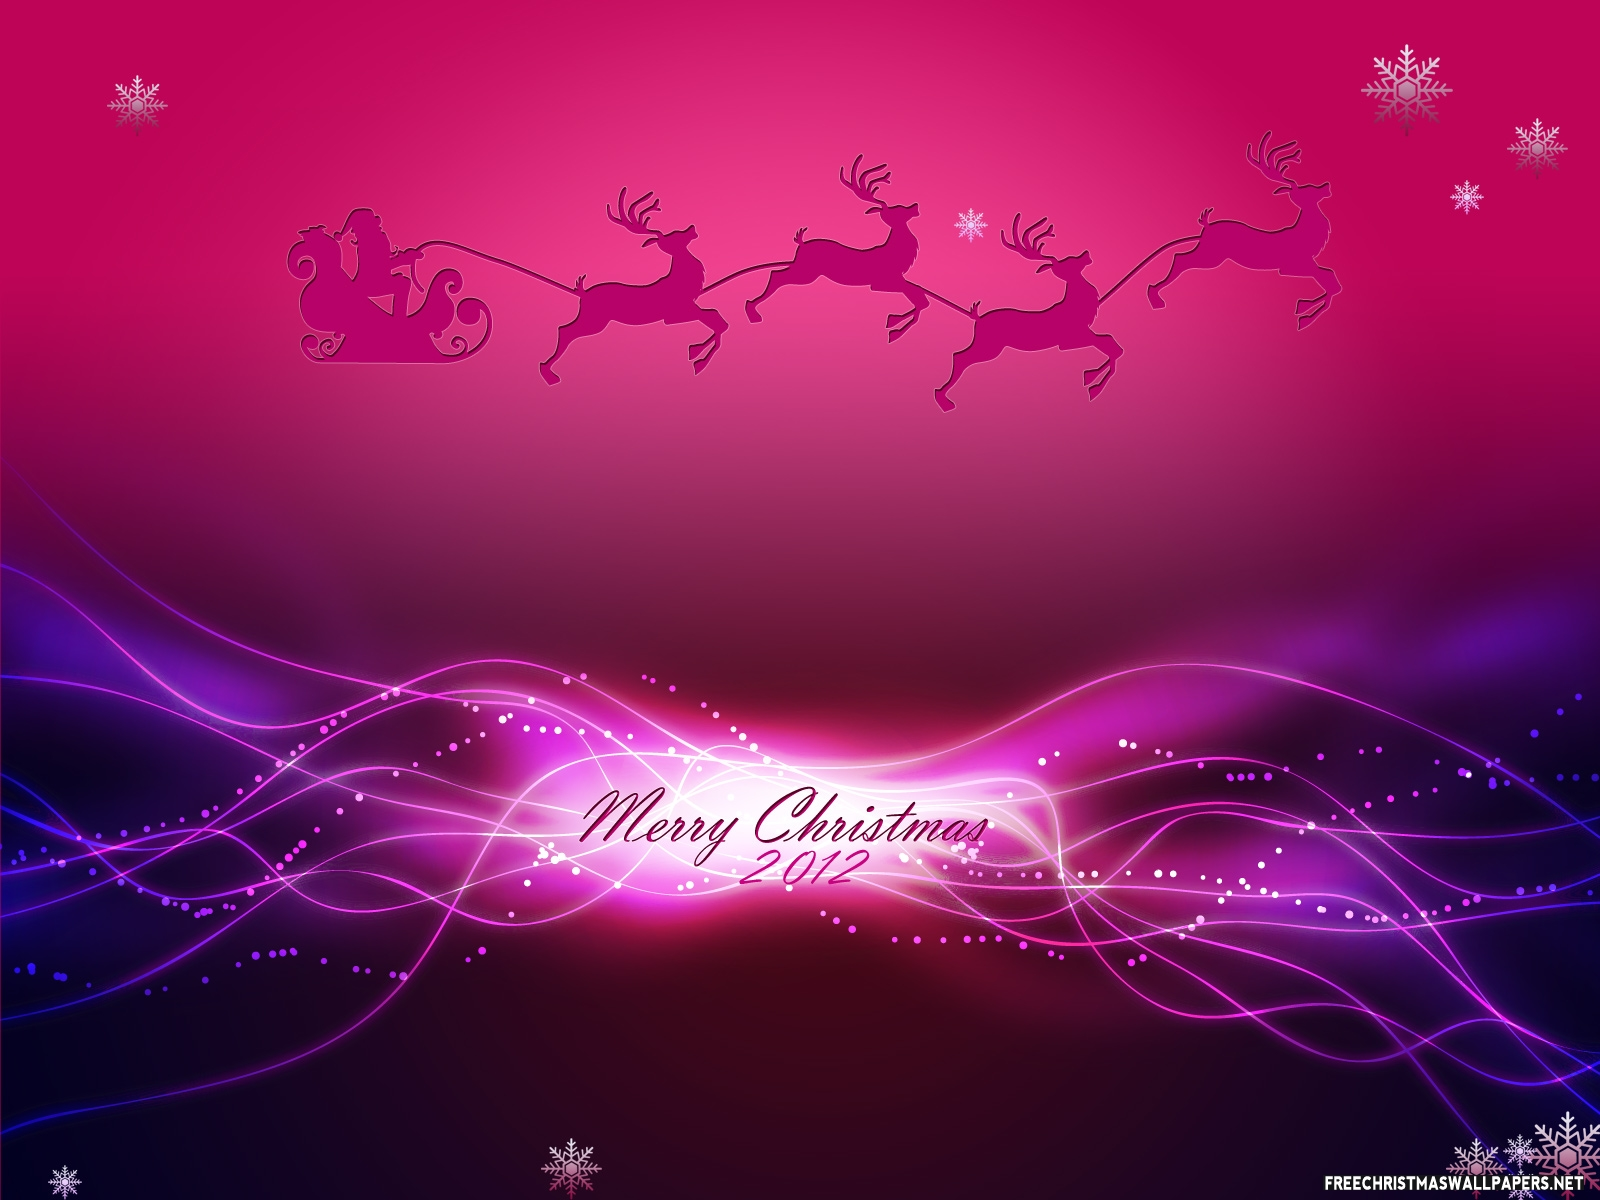 Top 24 Best Free Hd Christmas Wallpapers: Top 24 Best Free HD Christmas Wallpapers